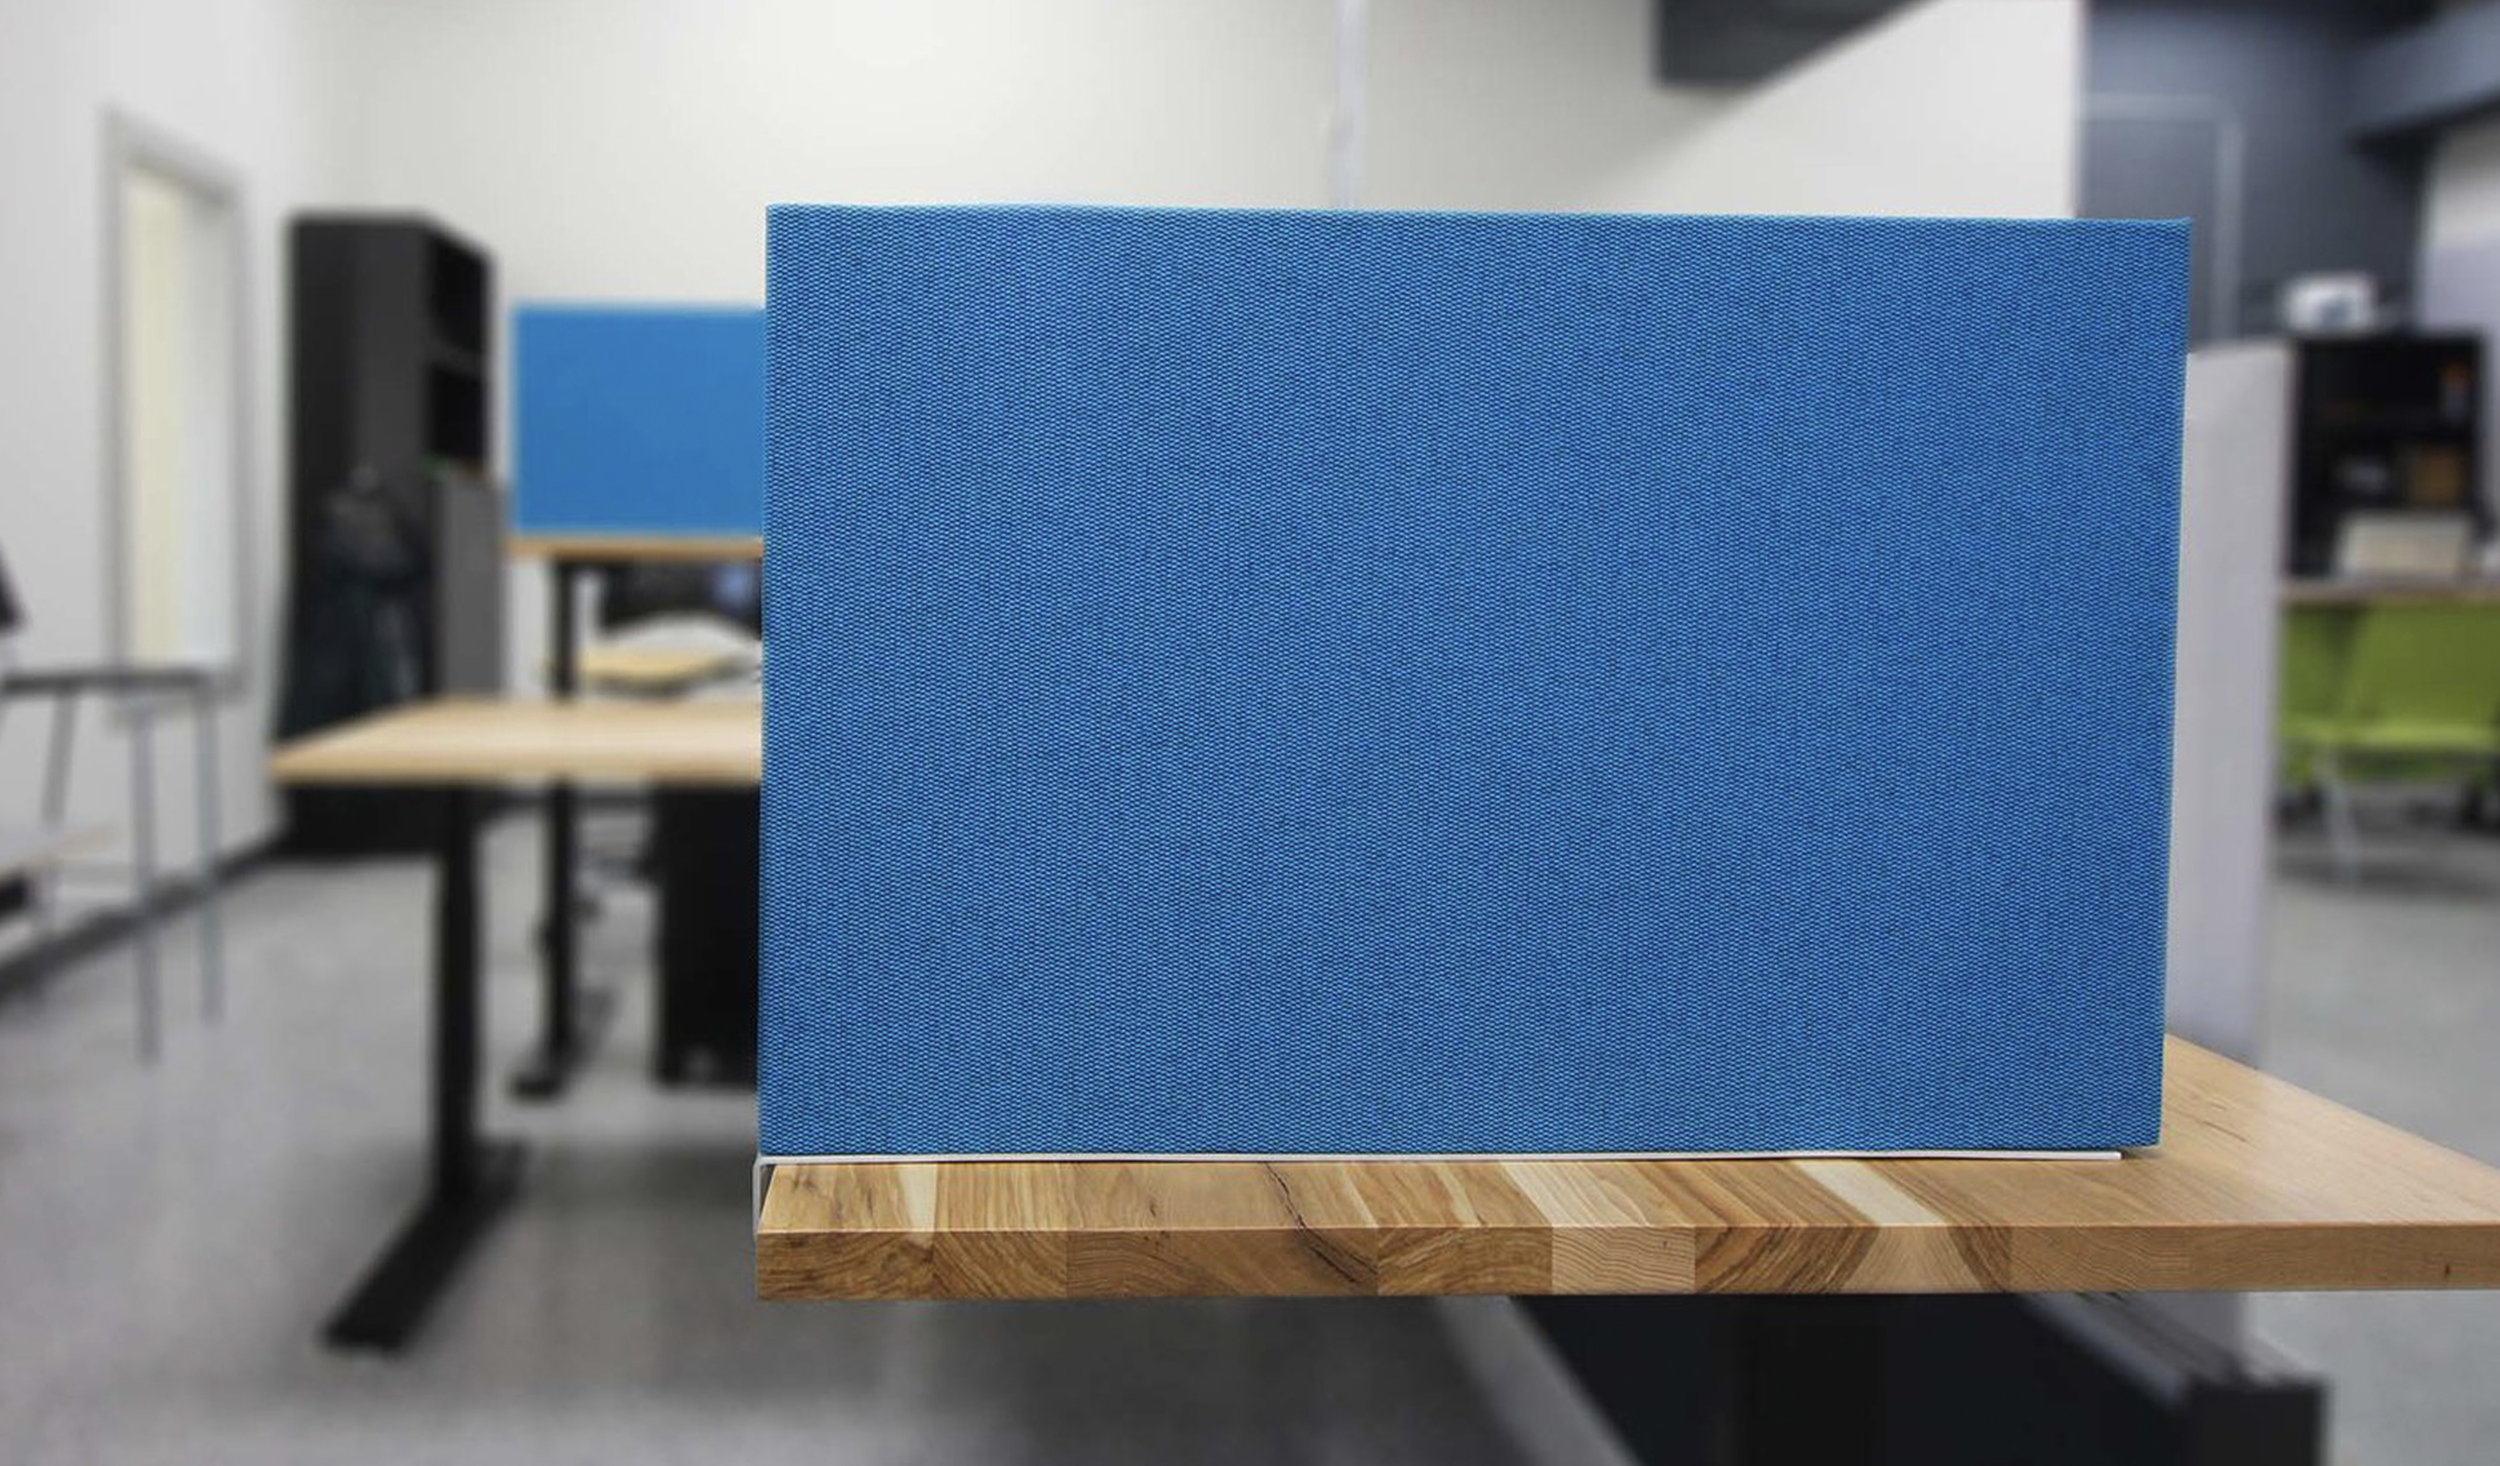 Privacy Screens - Define workspaces, help people focus, and give them a place to share ideas or work in progress with our tackable or writable divider screens. Have your own screens? We have brackets to attach them.